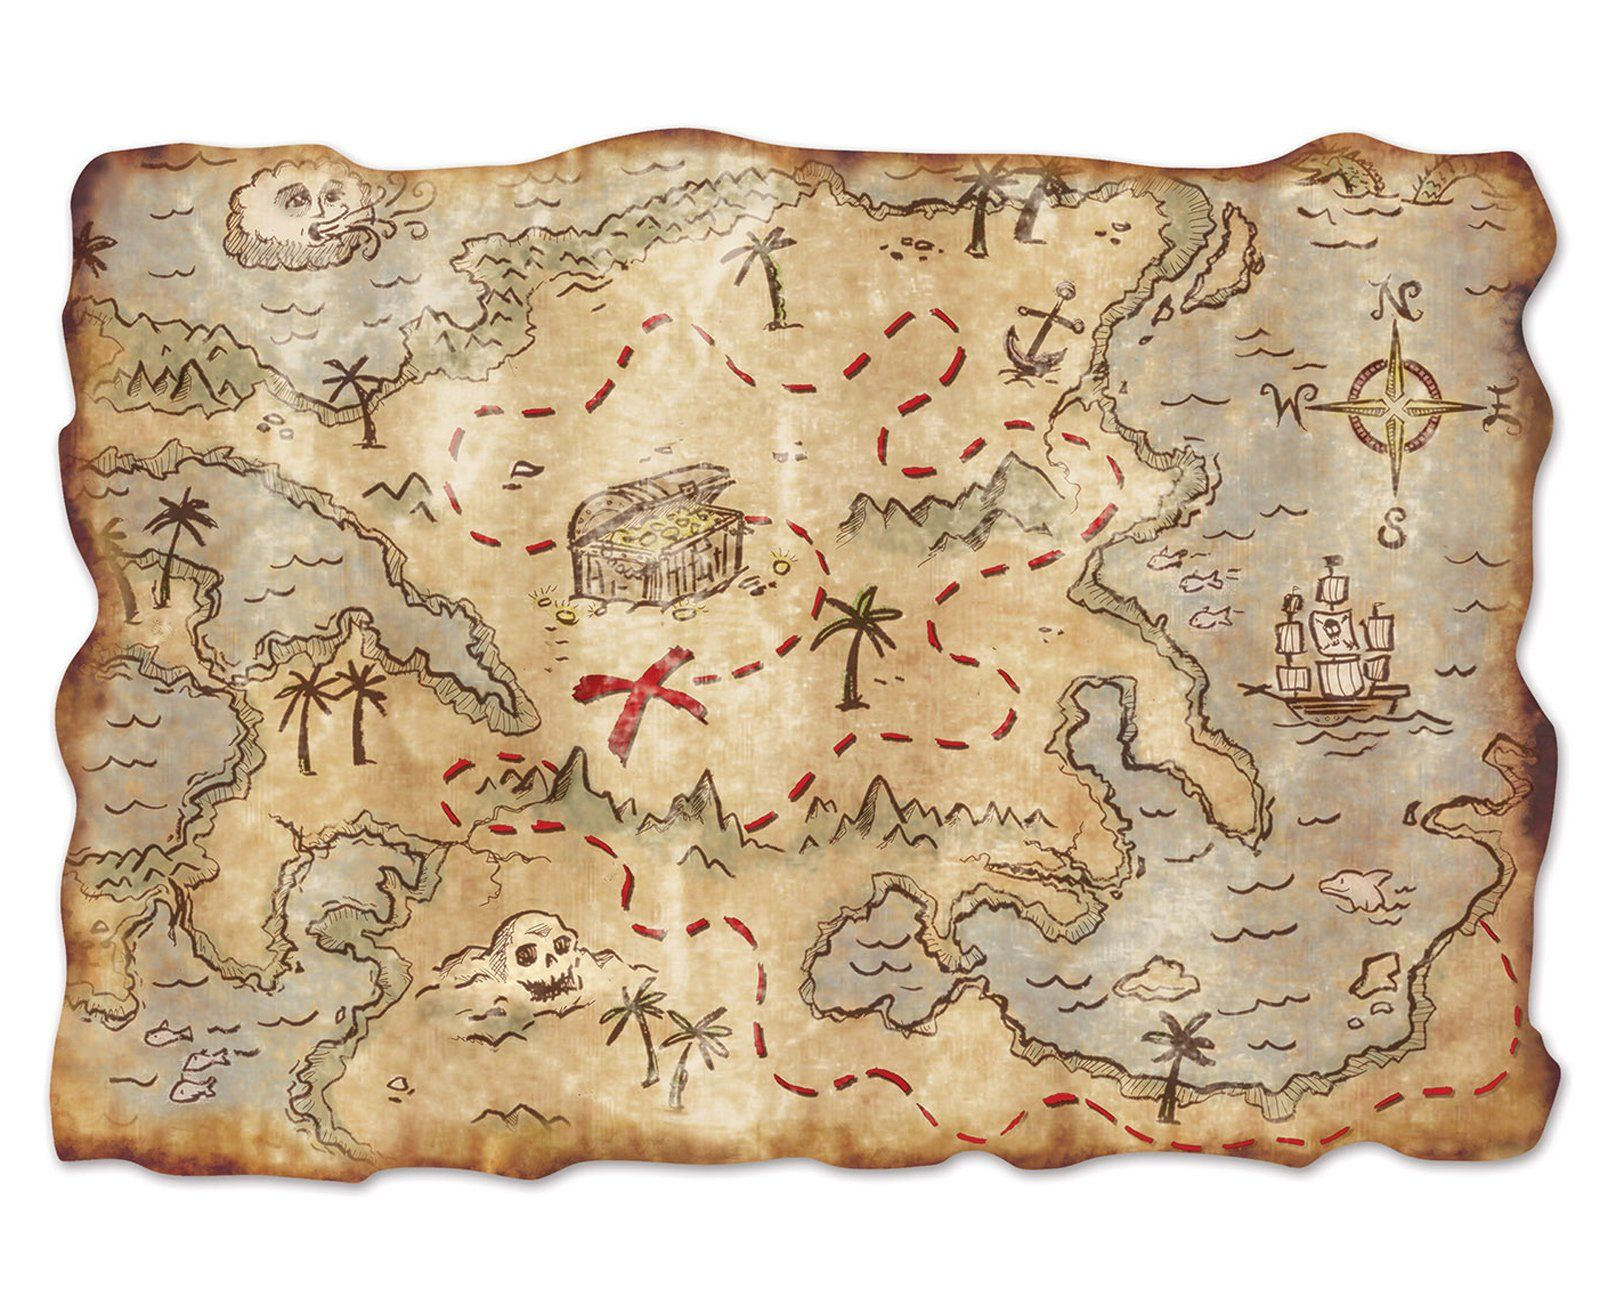 Jumbo Treasure Map Cutout Treasure Maps Birthdays And